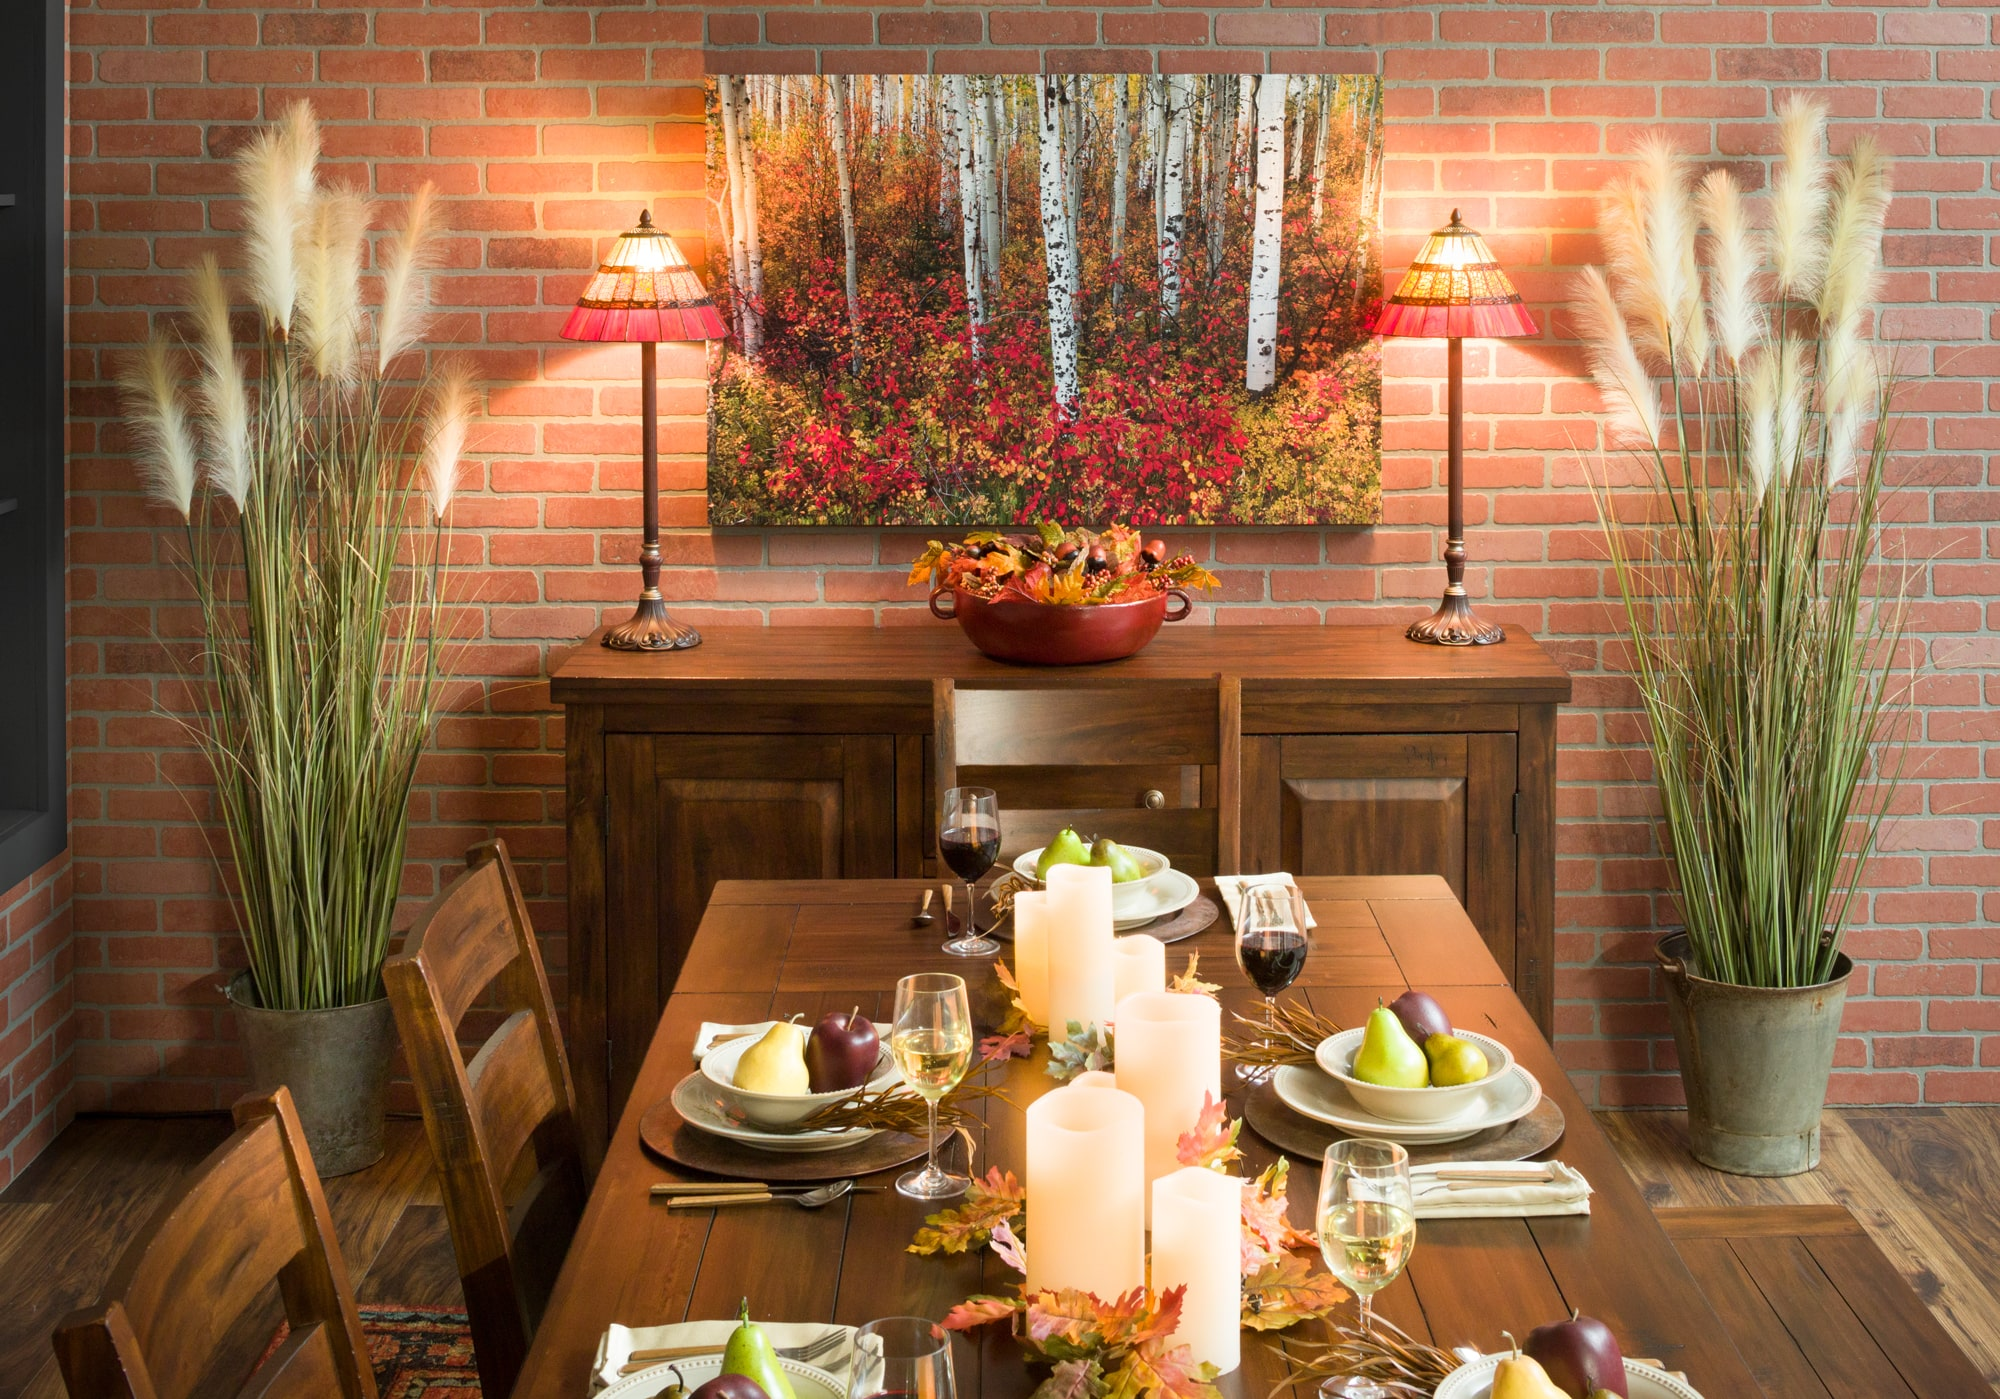 Dining server with lamps and fall decor